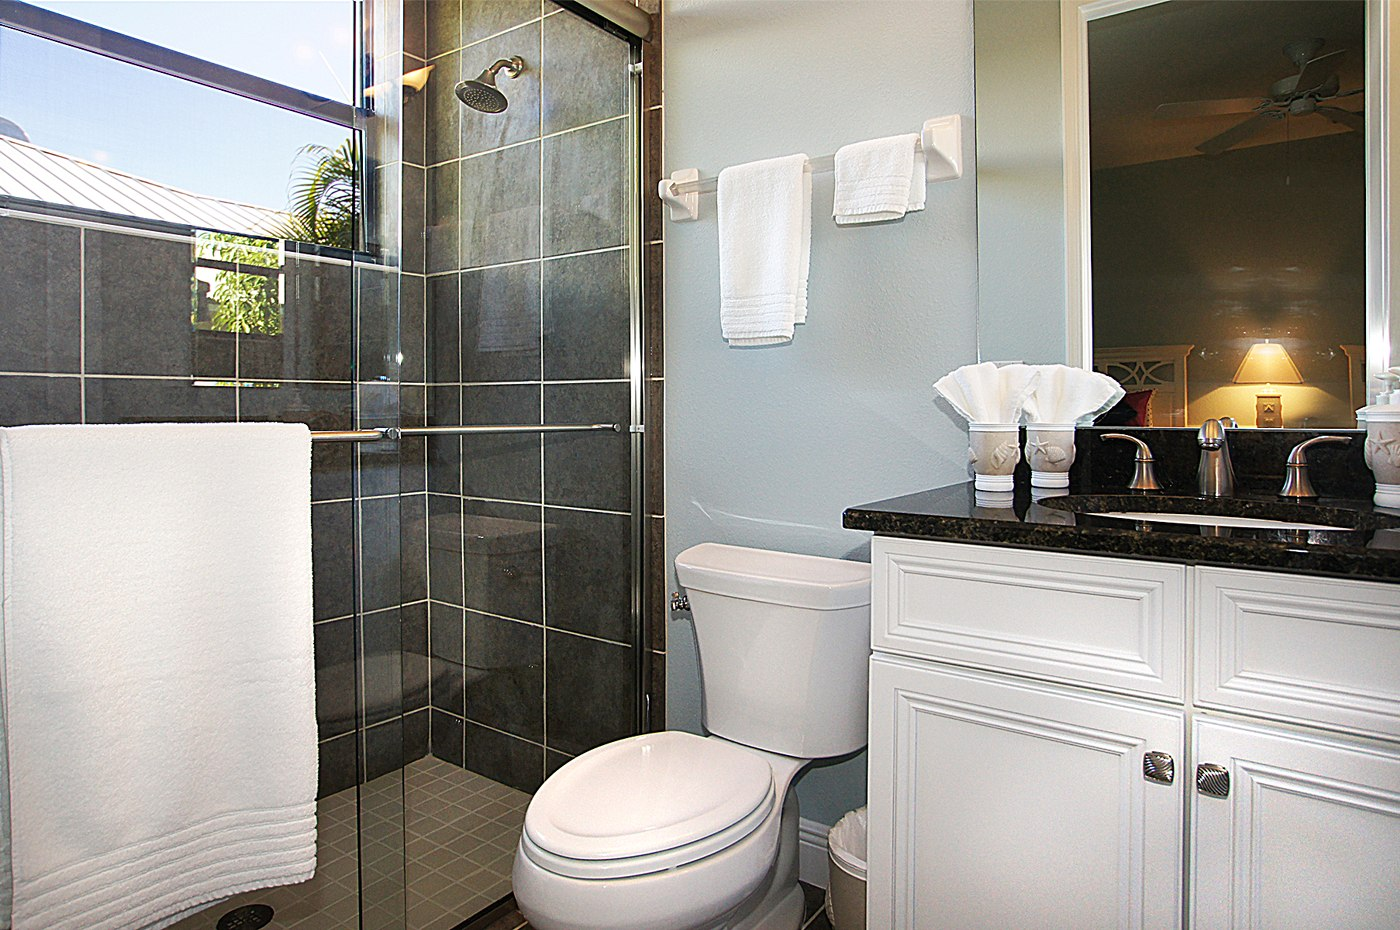 Bathroom in the rental home